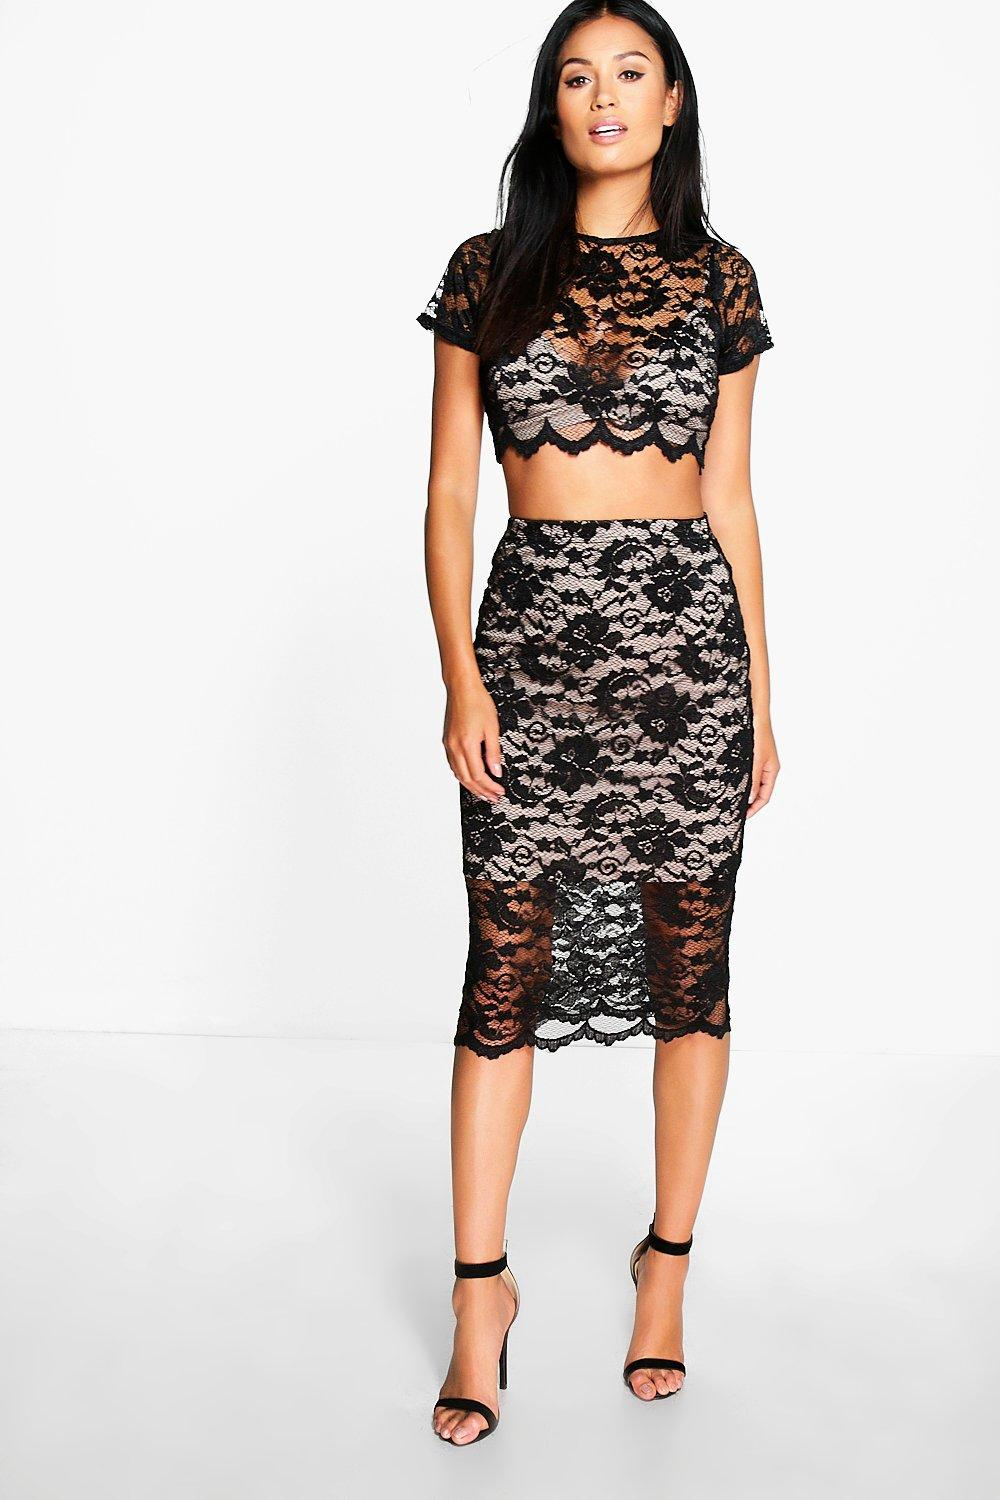 Madison3pc Bralet Lace Crop and Midi Skirt Co-Ord